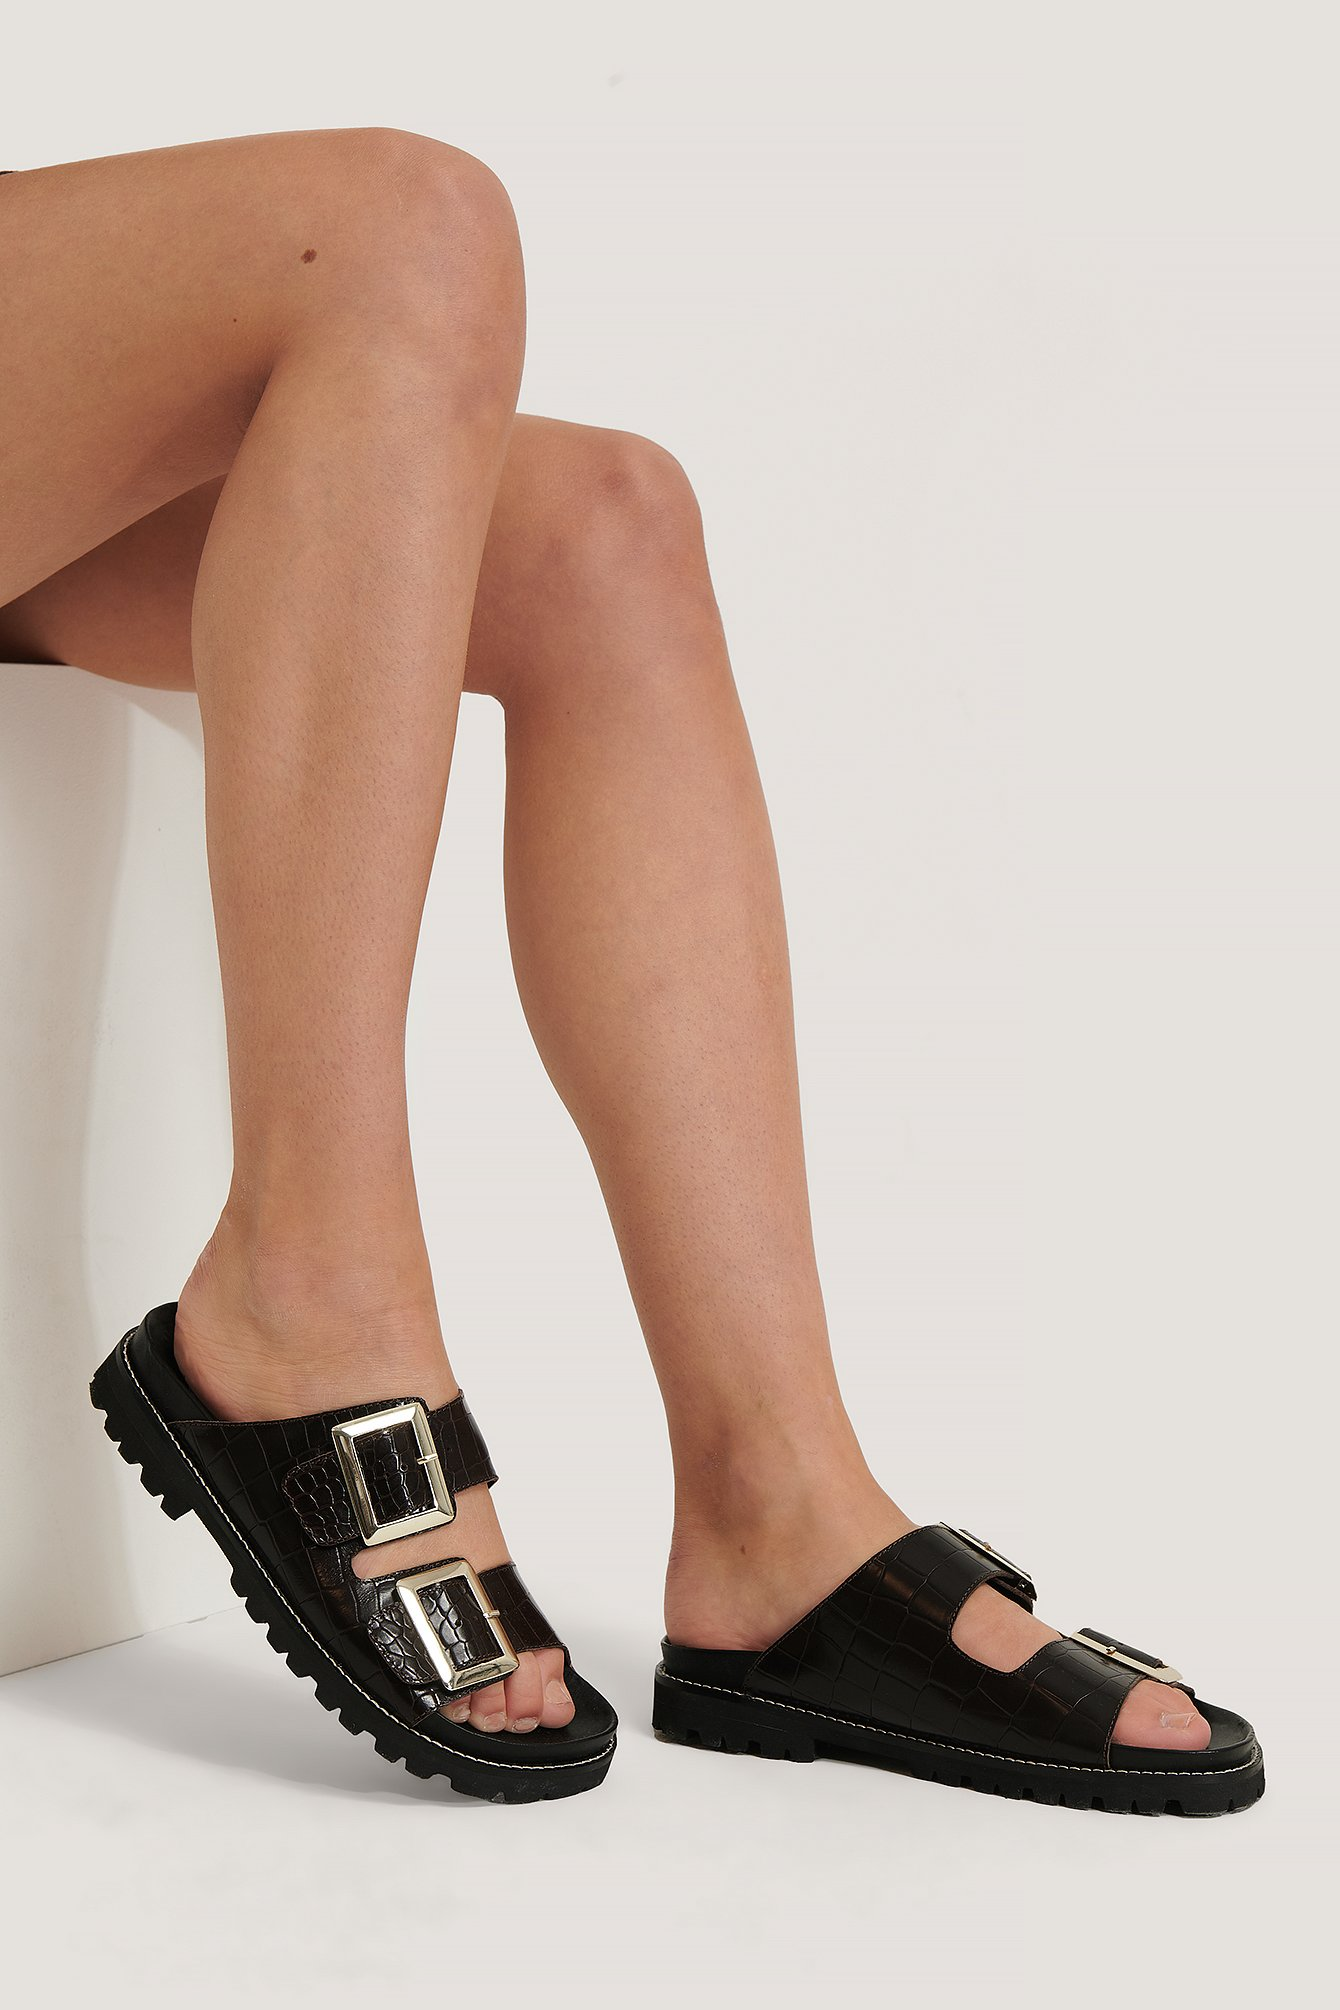 NA-KD Shoes Leather Chunky Buckle Sandals - Brown